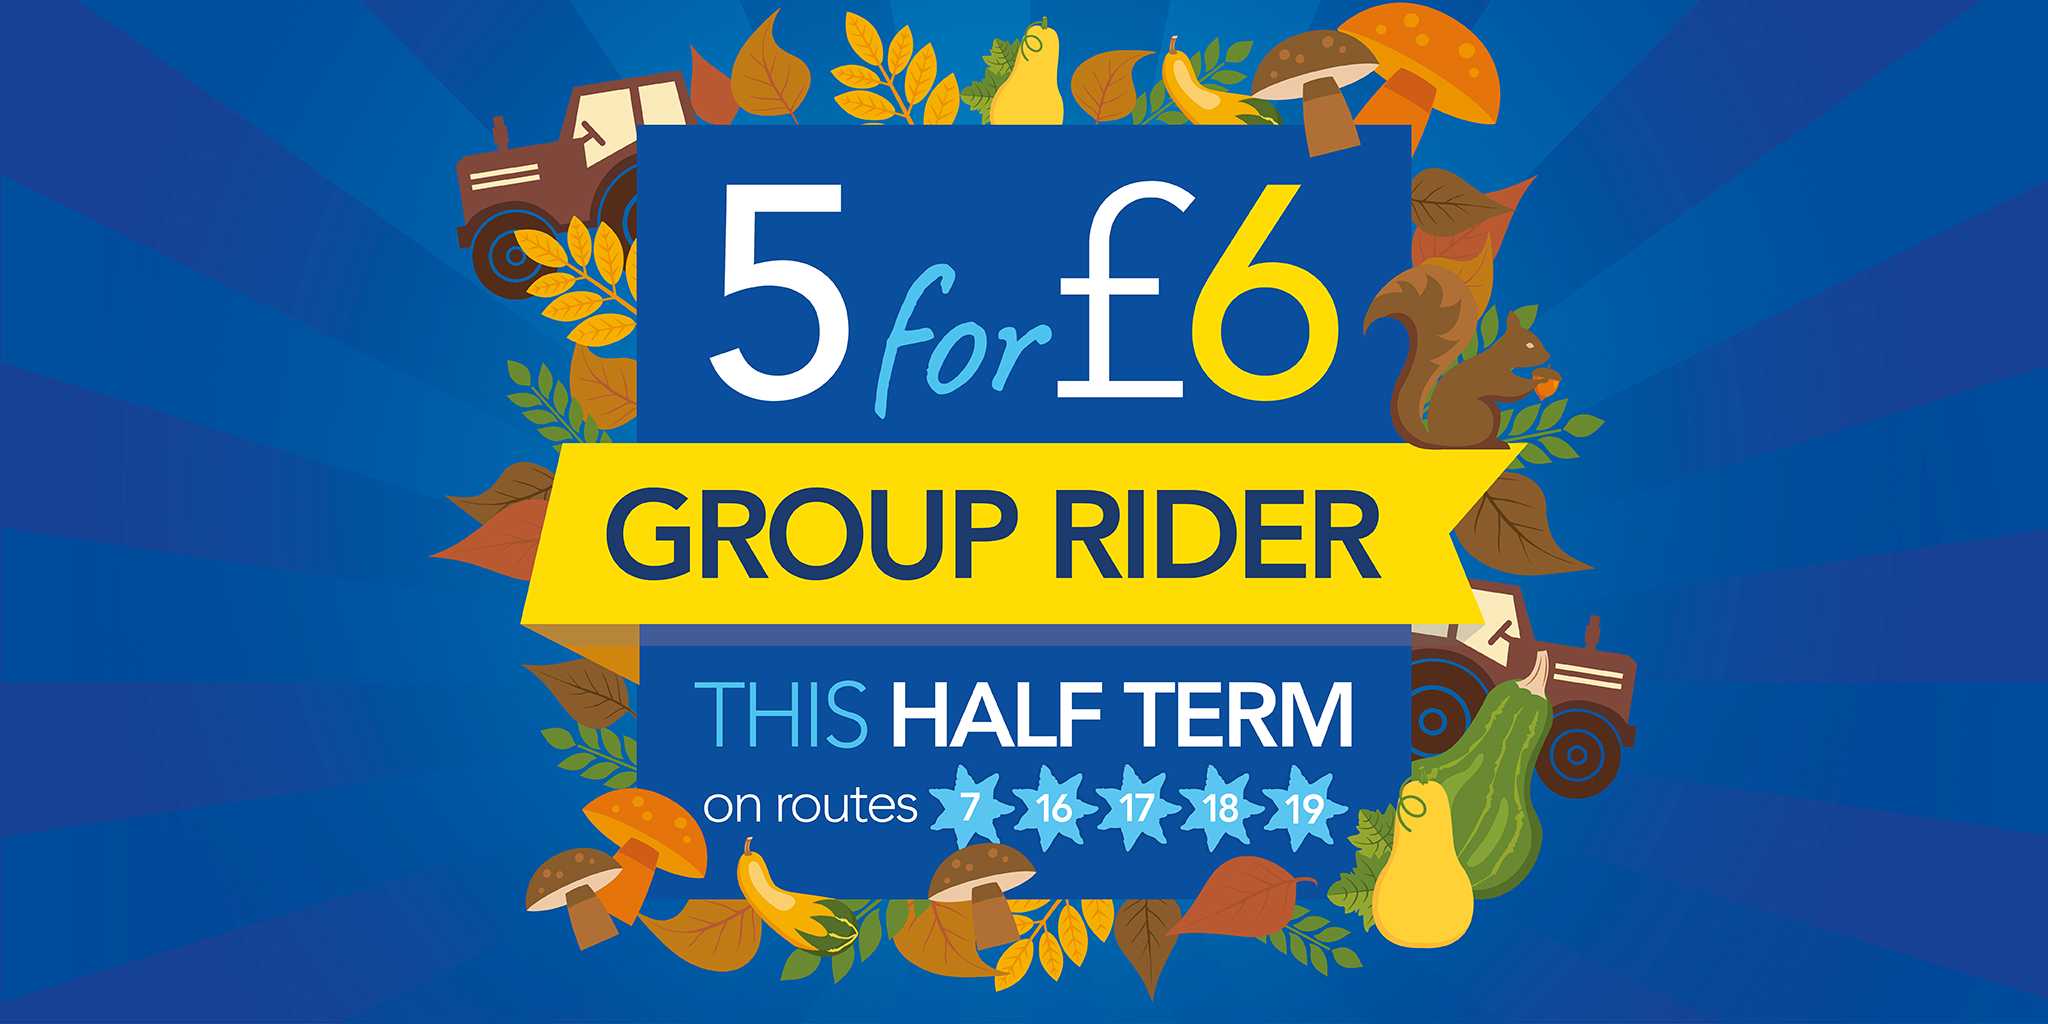 5 for £6 group dayrider ticket this Autumn